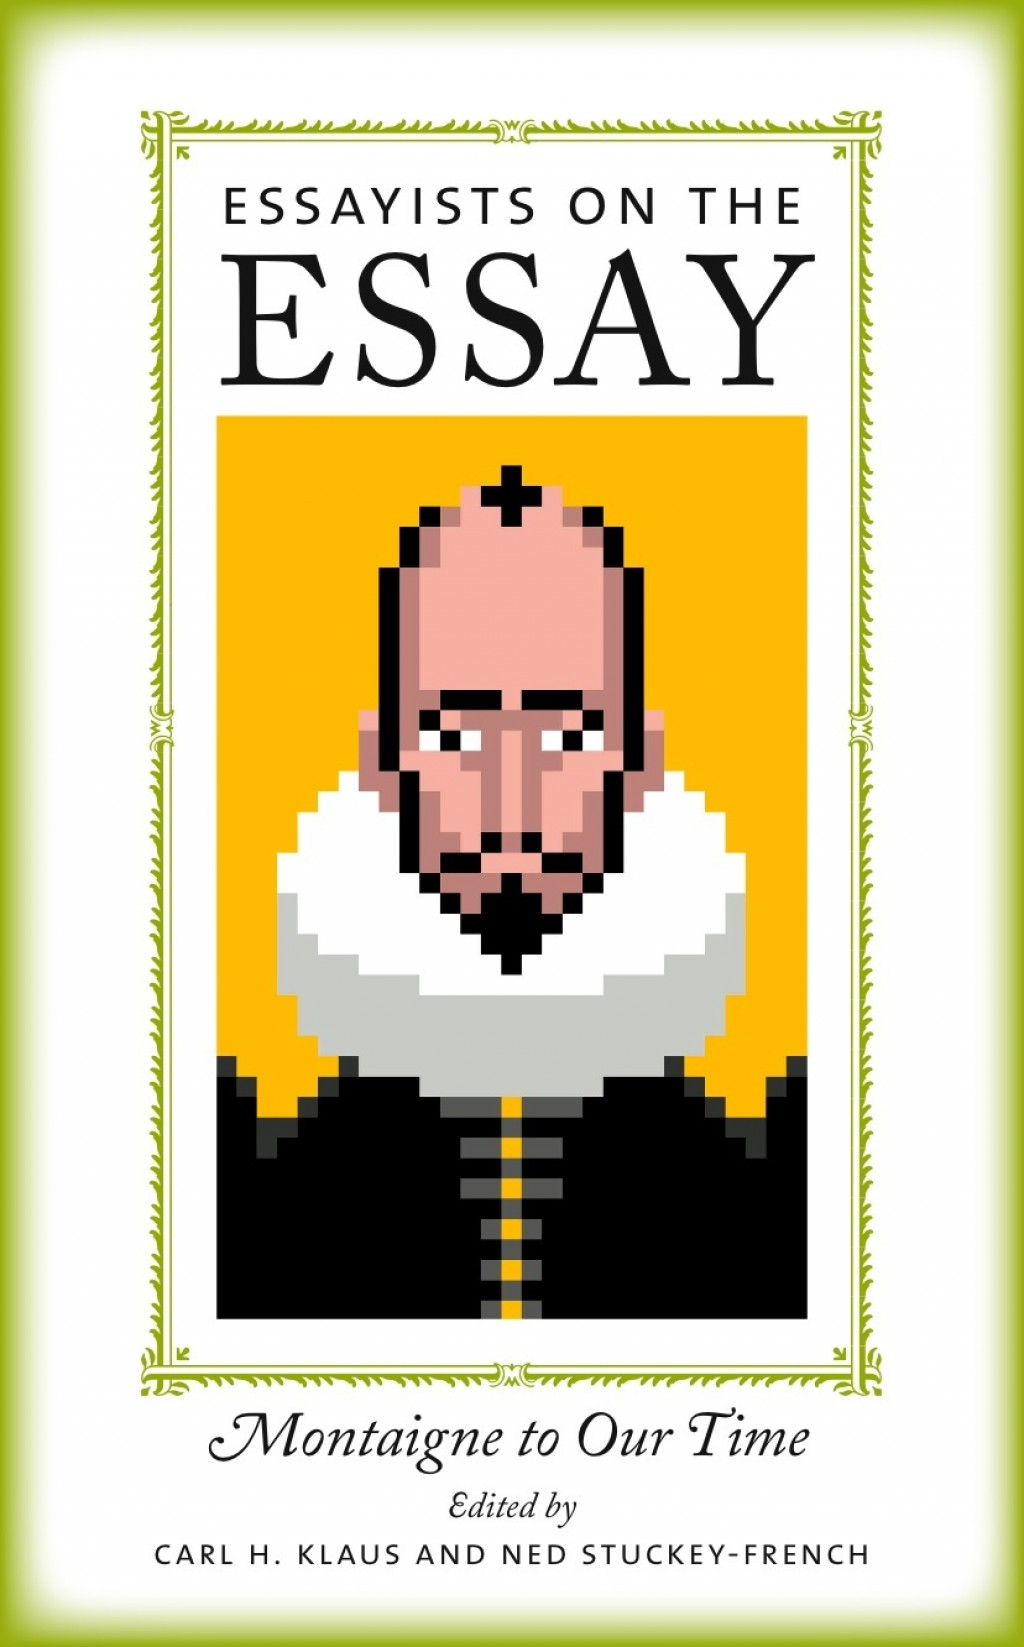 024 Essay Example It Gets Worse Collection Of Essays Essayists On The Impressive A Epub Pdf Large